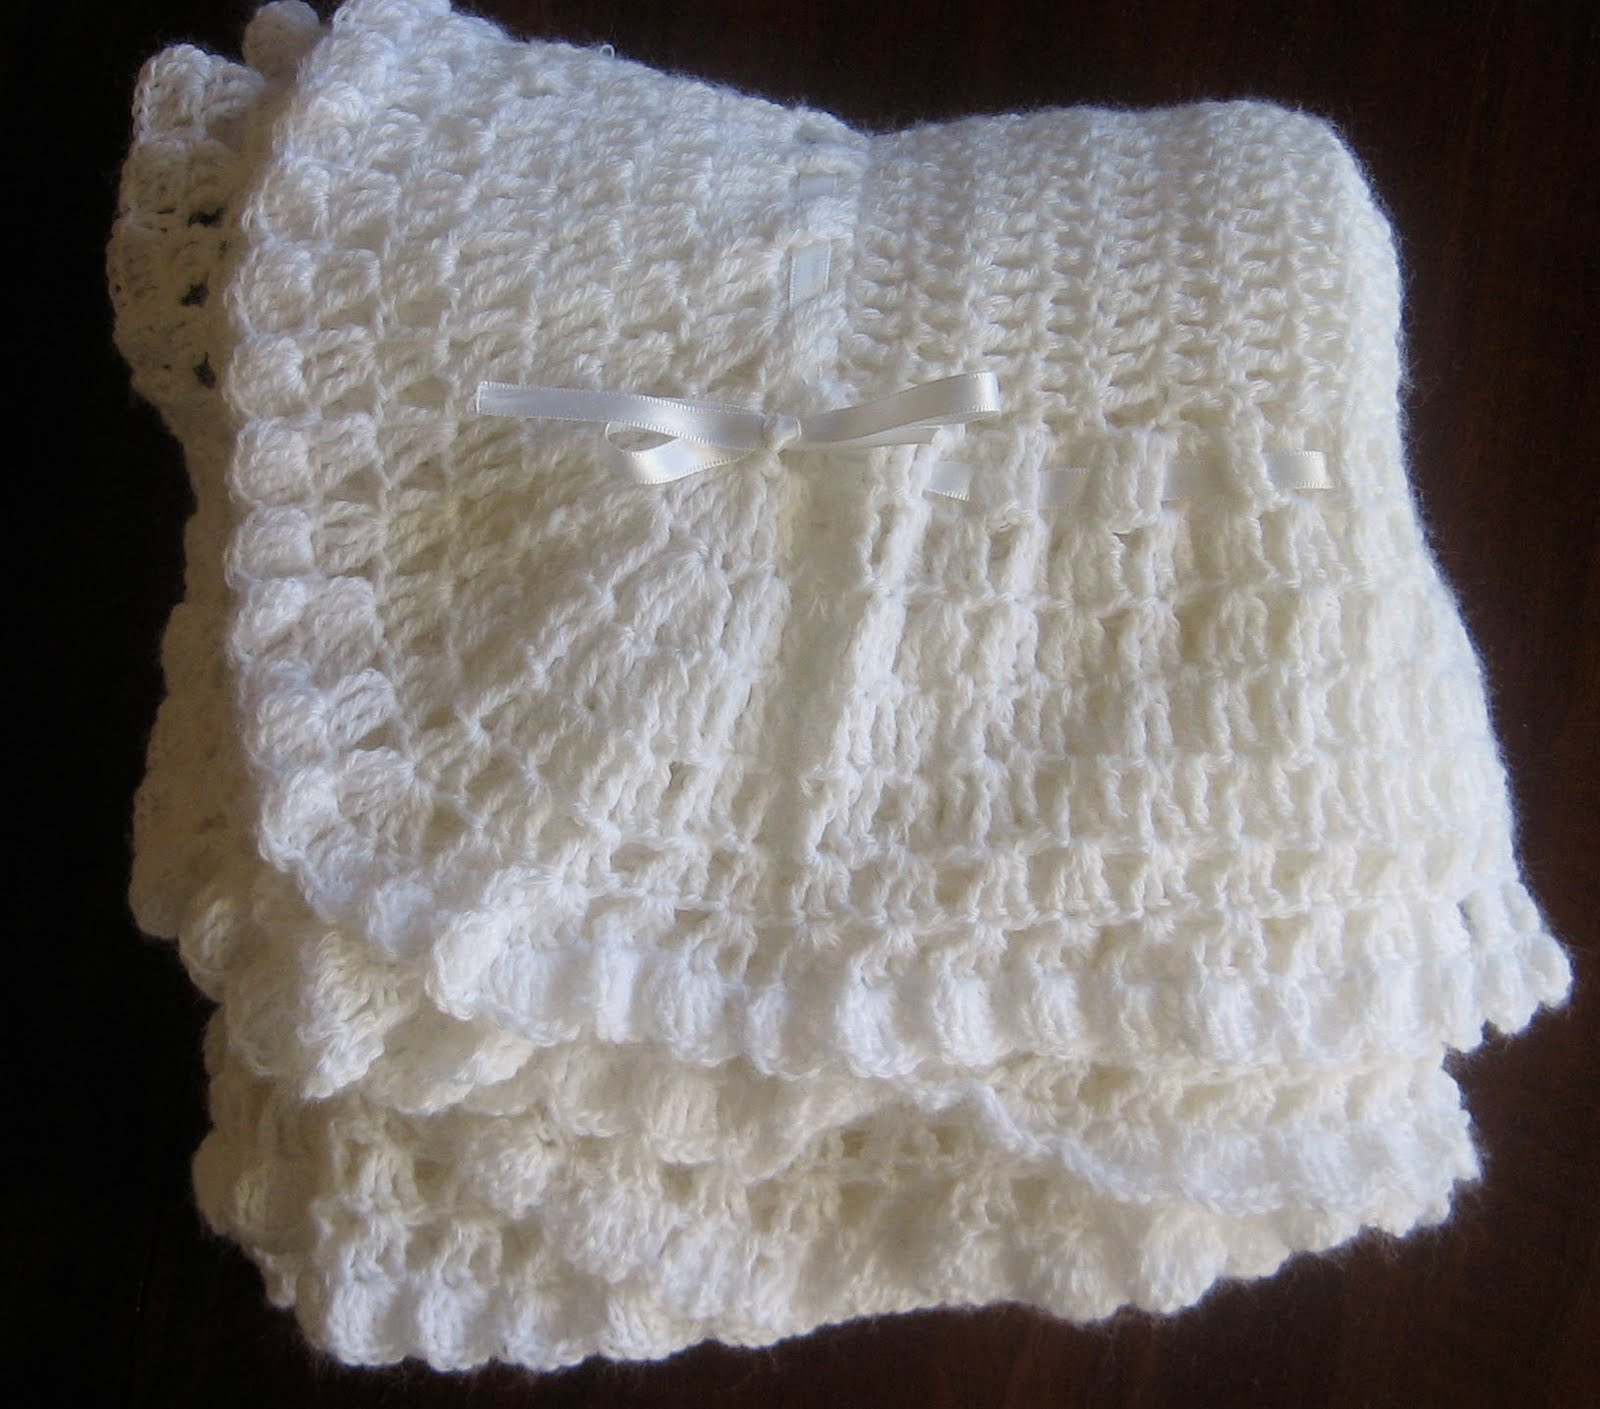 Antique Crochet Patterns : finally finished crocheting this babies blanket from a vintage pattern ...